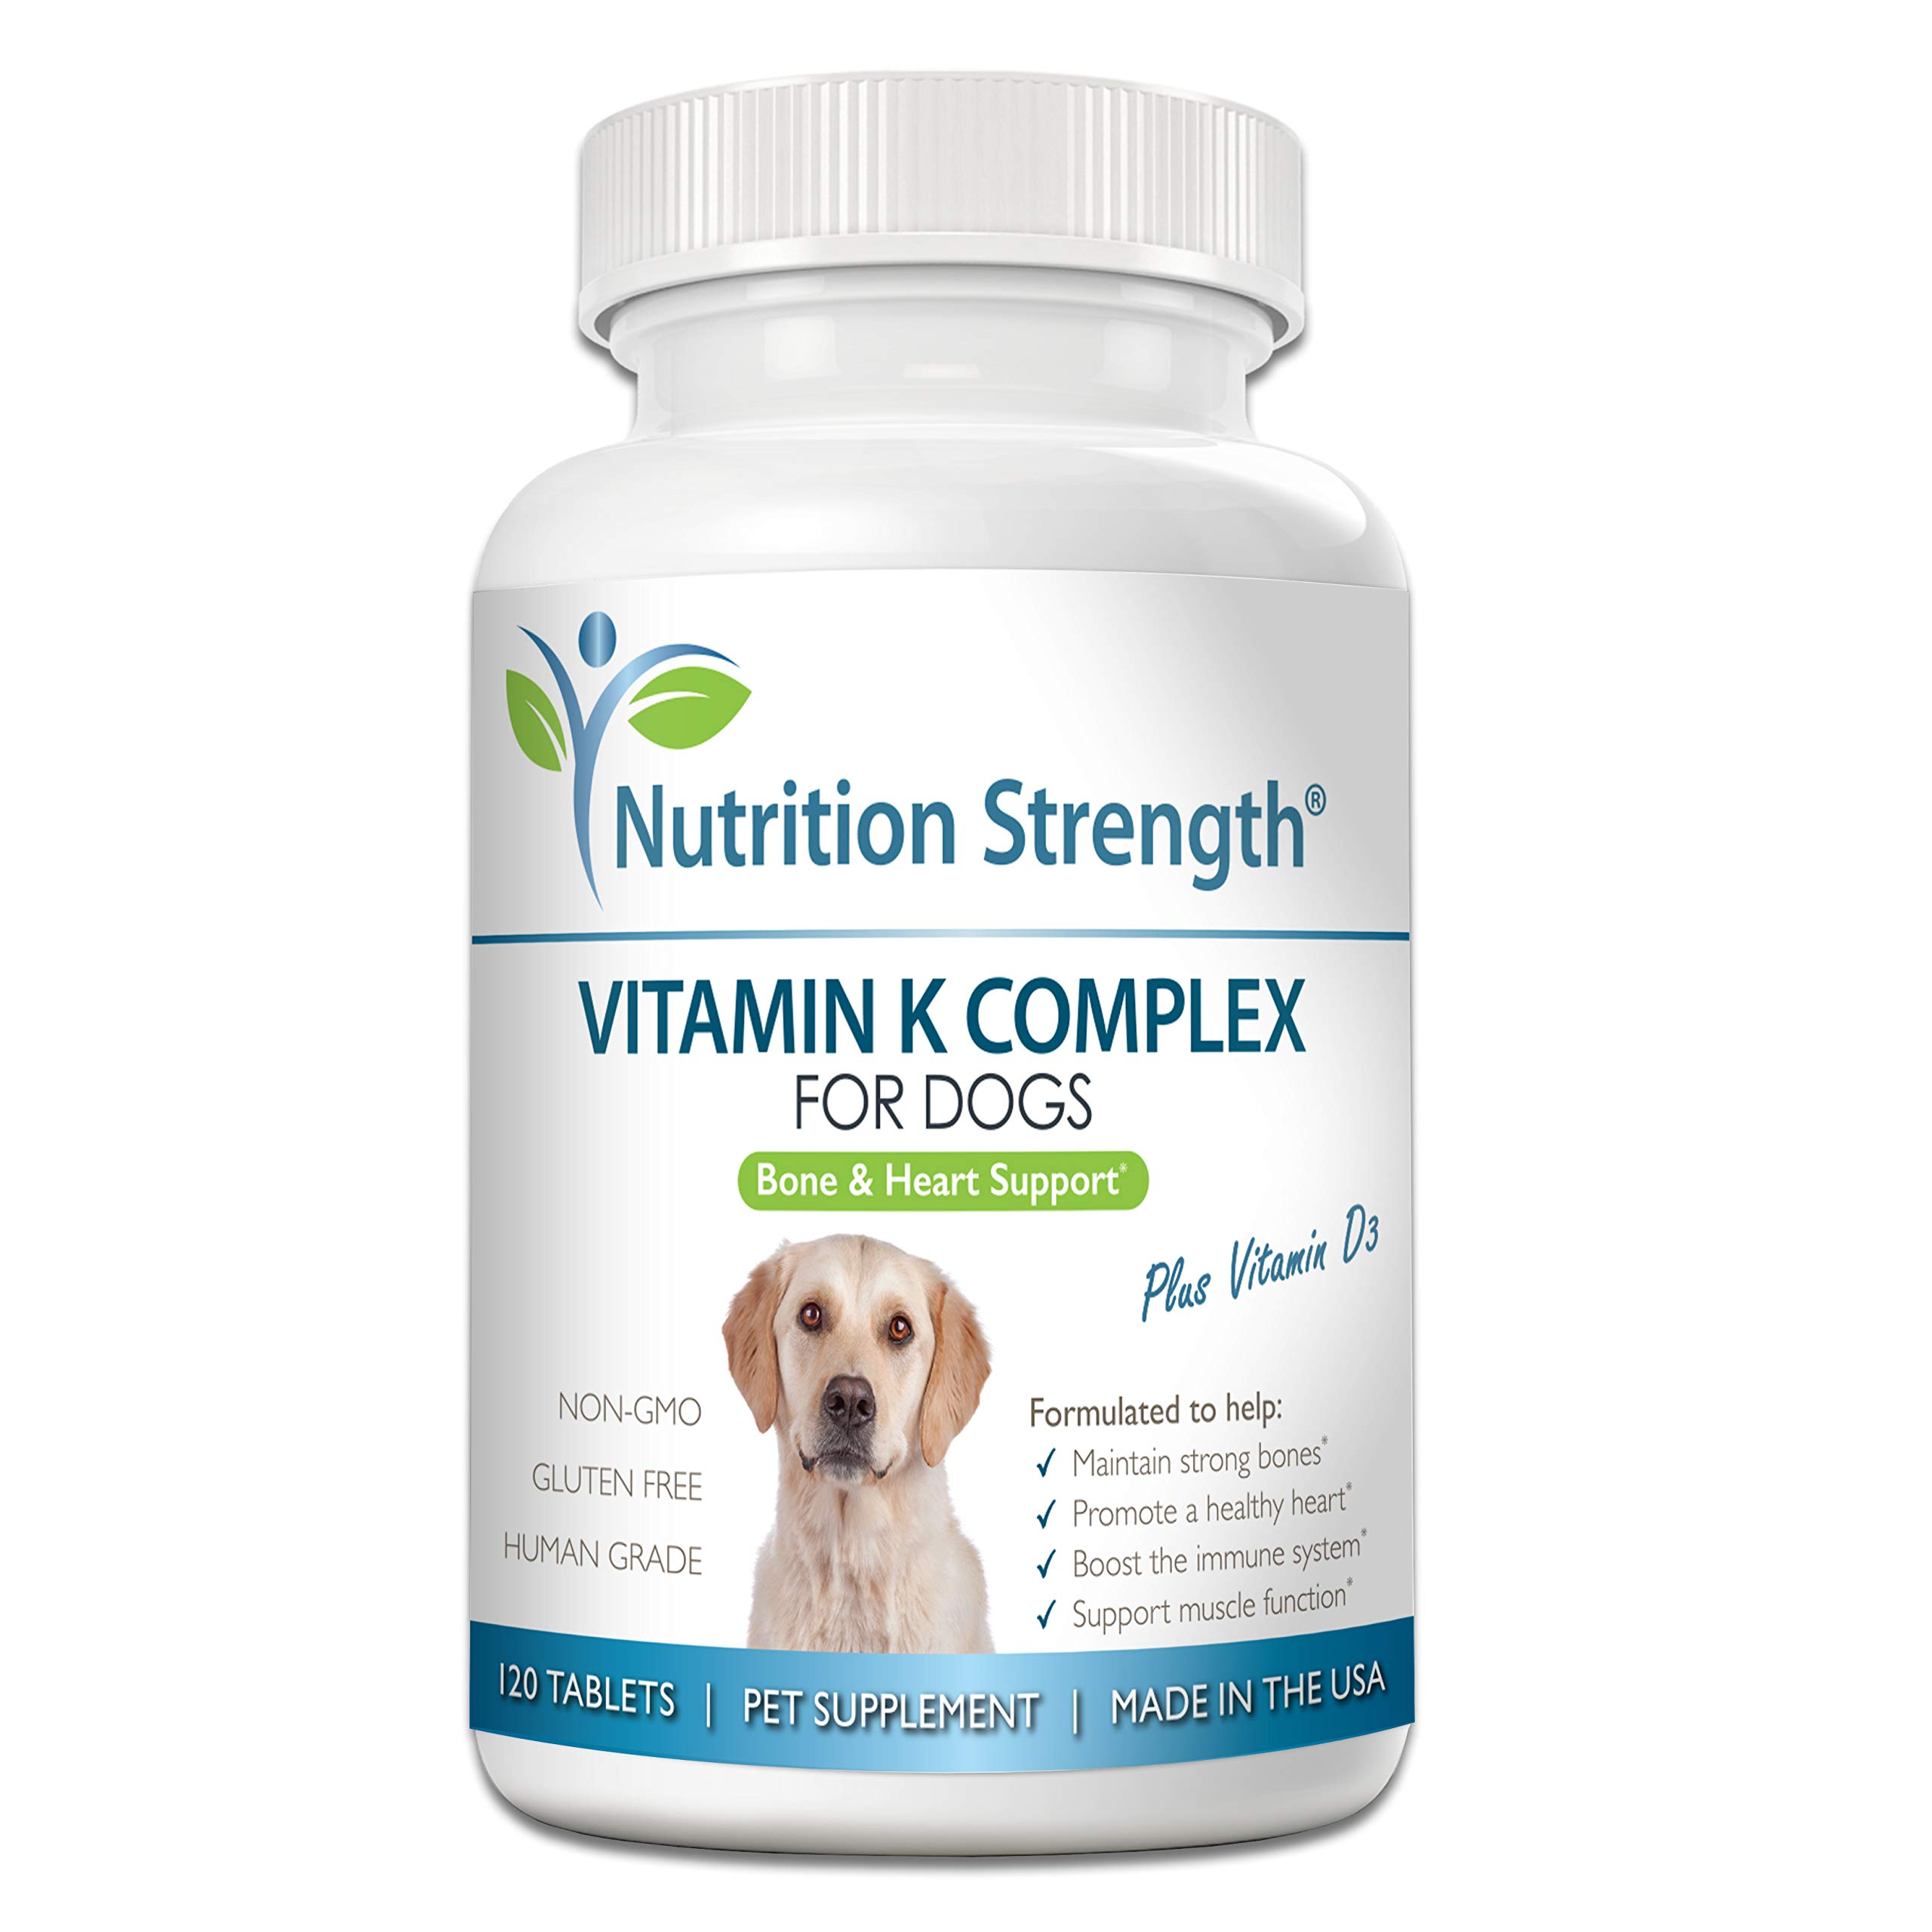 Nutrition Strength Vitamin K for Dogs, Vitamins K1 & K2 (MK4 & MK7) + Vitamin D3, Help Maintain Strong Bones, Promote Healthy Heart, Boost Immune System, Support Muscle Function, 120 Chewable Tablets